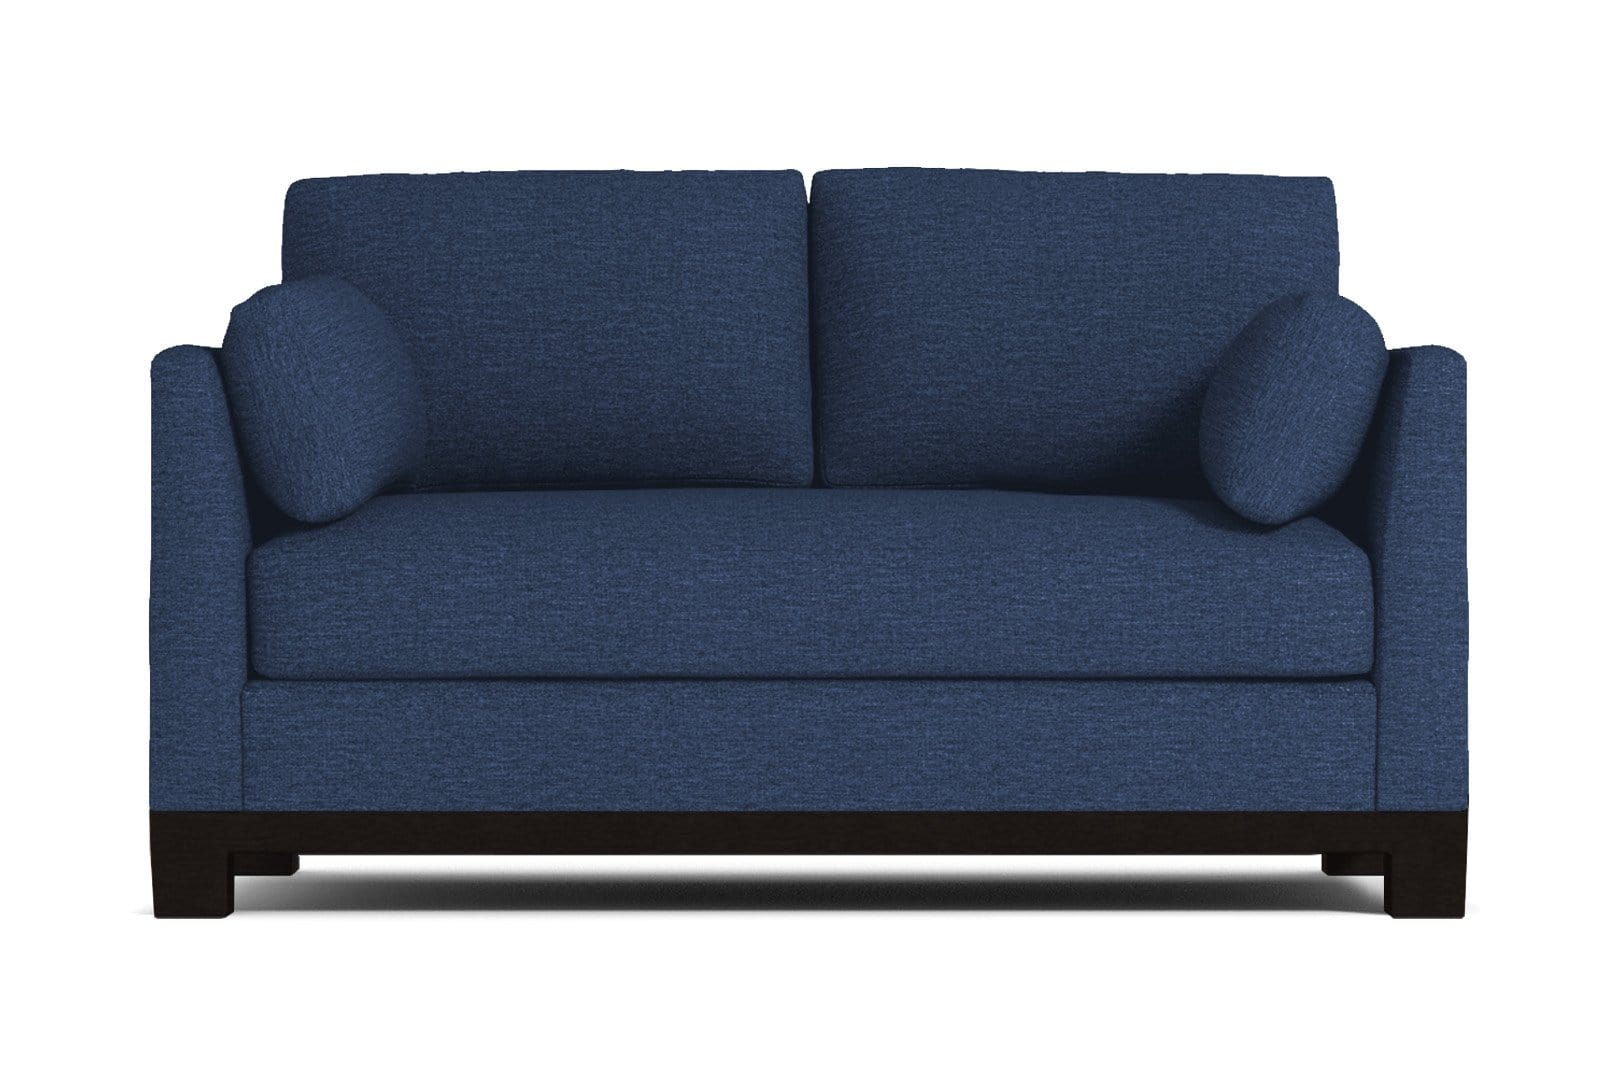 Avalon Apartment Size Sleeper Sofa - Blue QUICK SHIP - Pull Out Couch Bed Made in the USA - Sold...